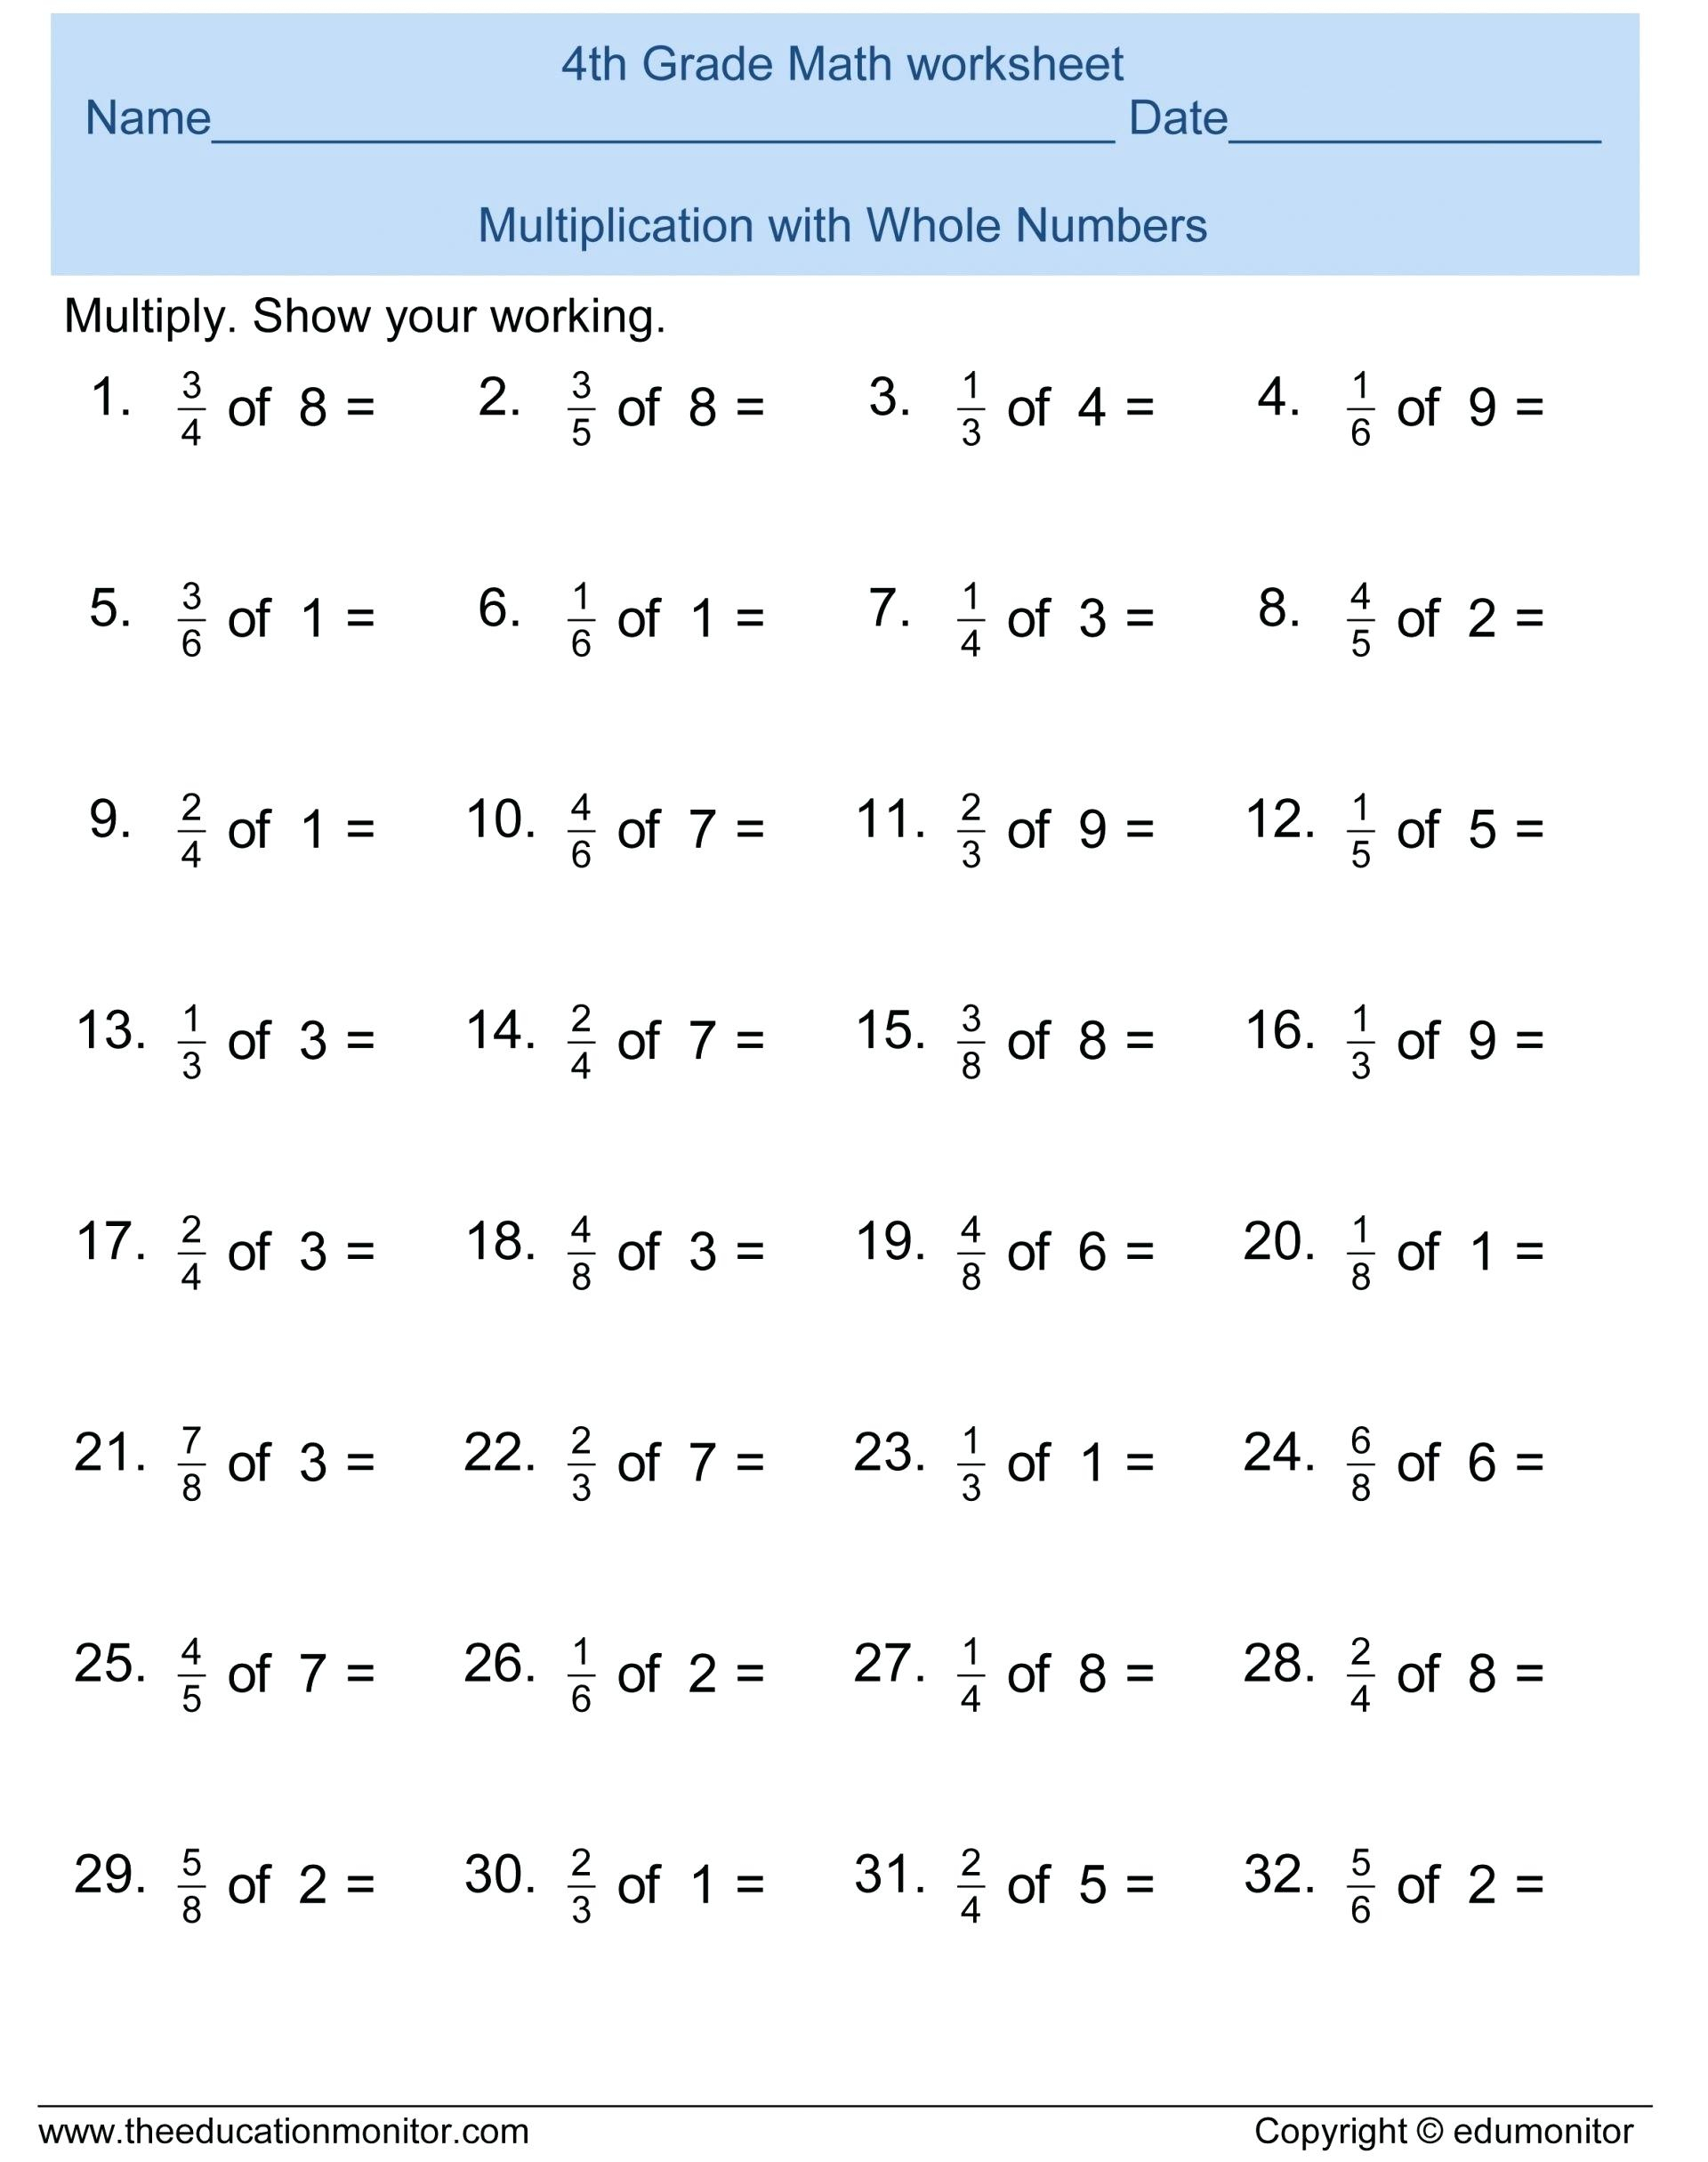 4th Grade Math Worksheets Printable